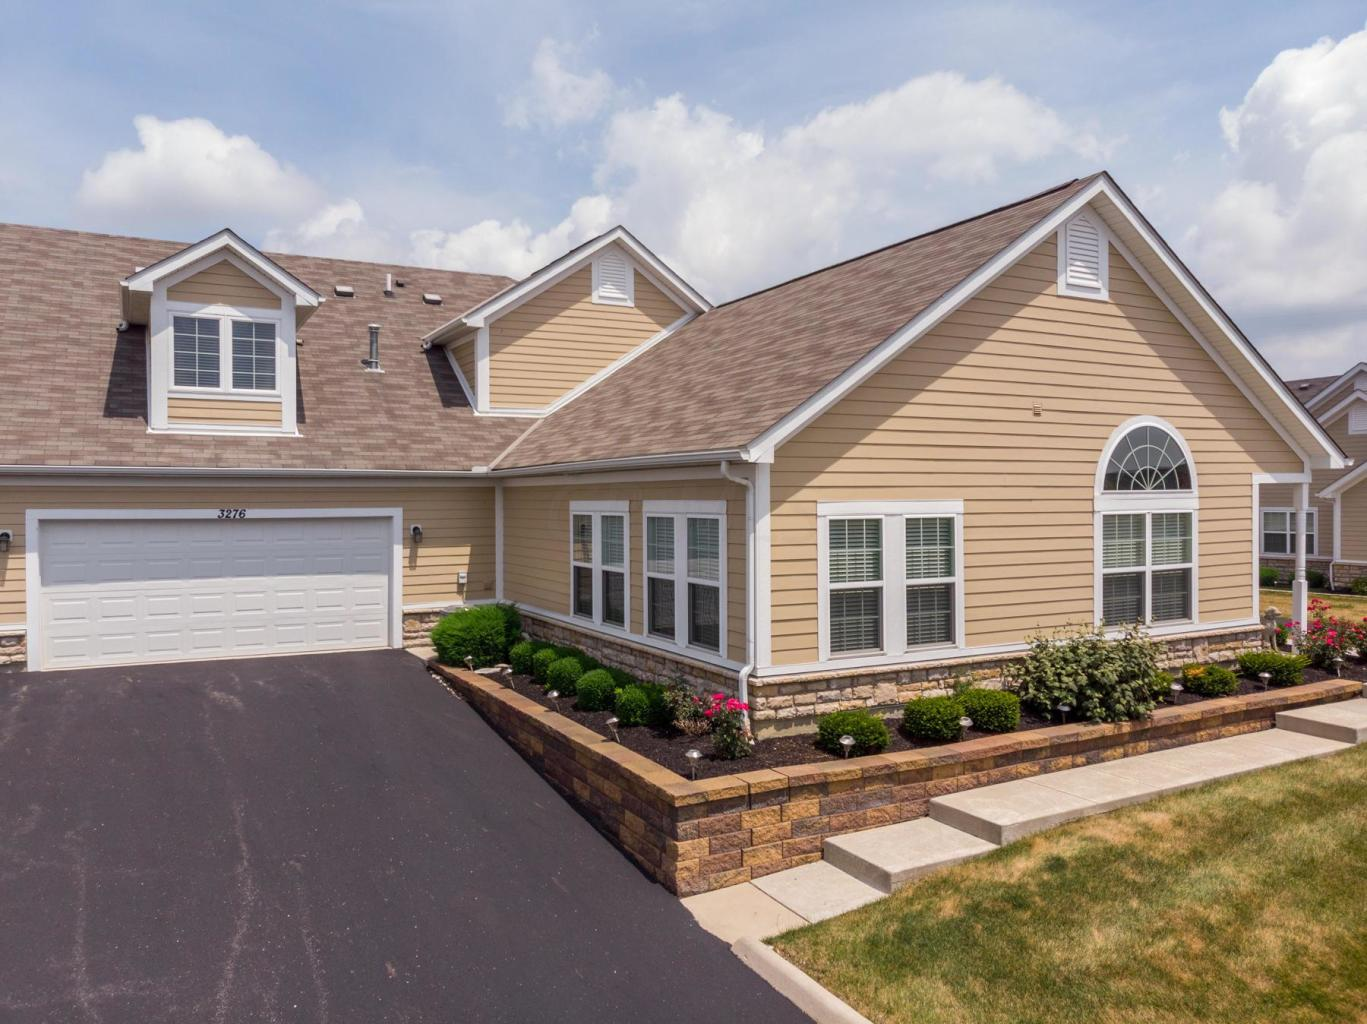 3276 Kenmare Lane, Powell, OH 43065